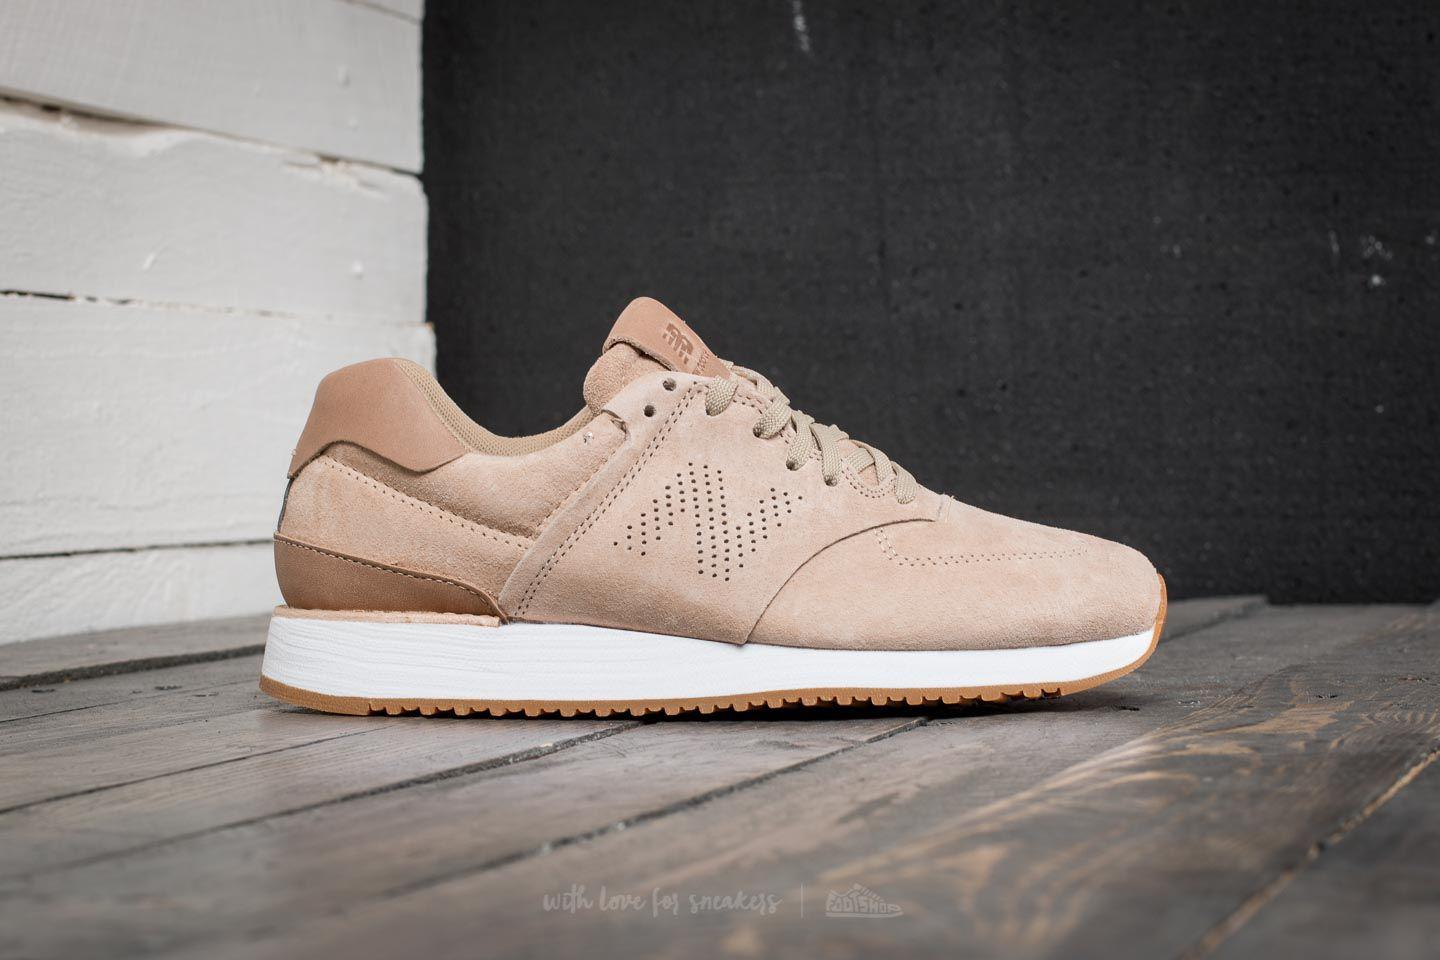 24b1b4c9e3507 New Balance 745 Brown/ White in Brown for Men - Lyst